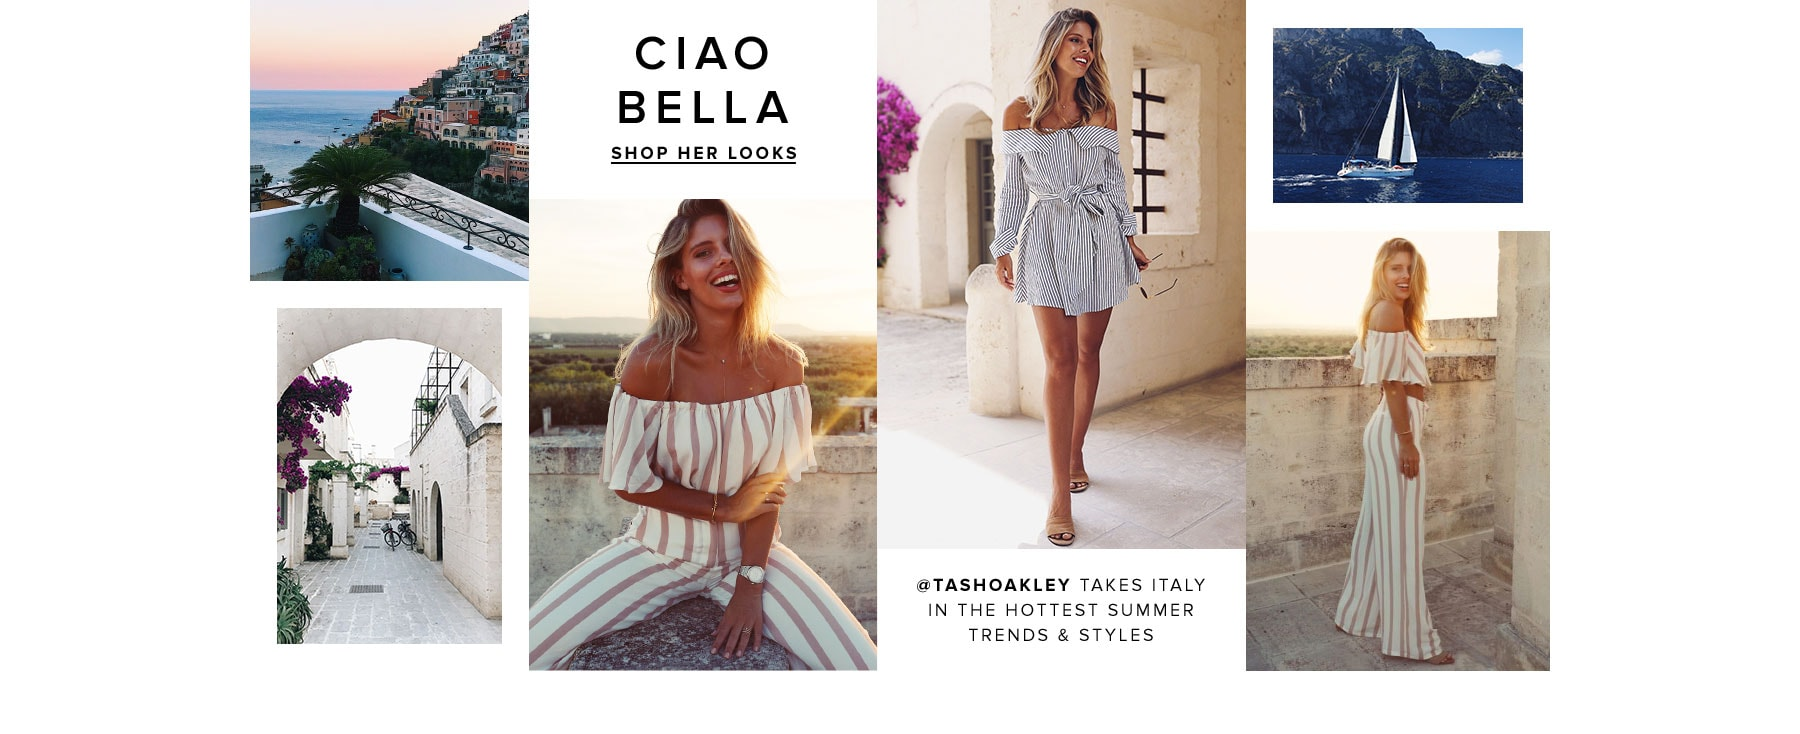 Ciao Bella. @TashOakley takes Italy in the hottest summer trends & styles. Shop her Looks.